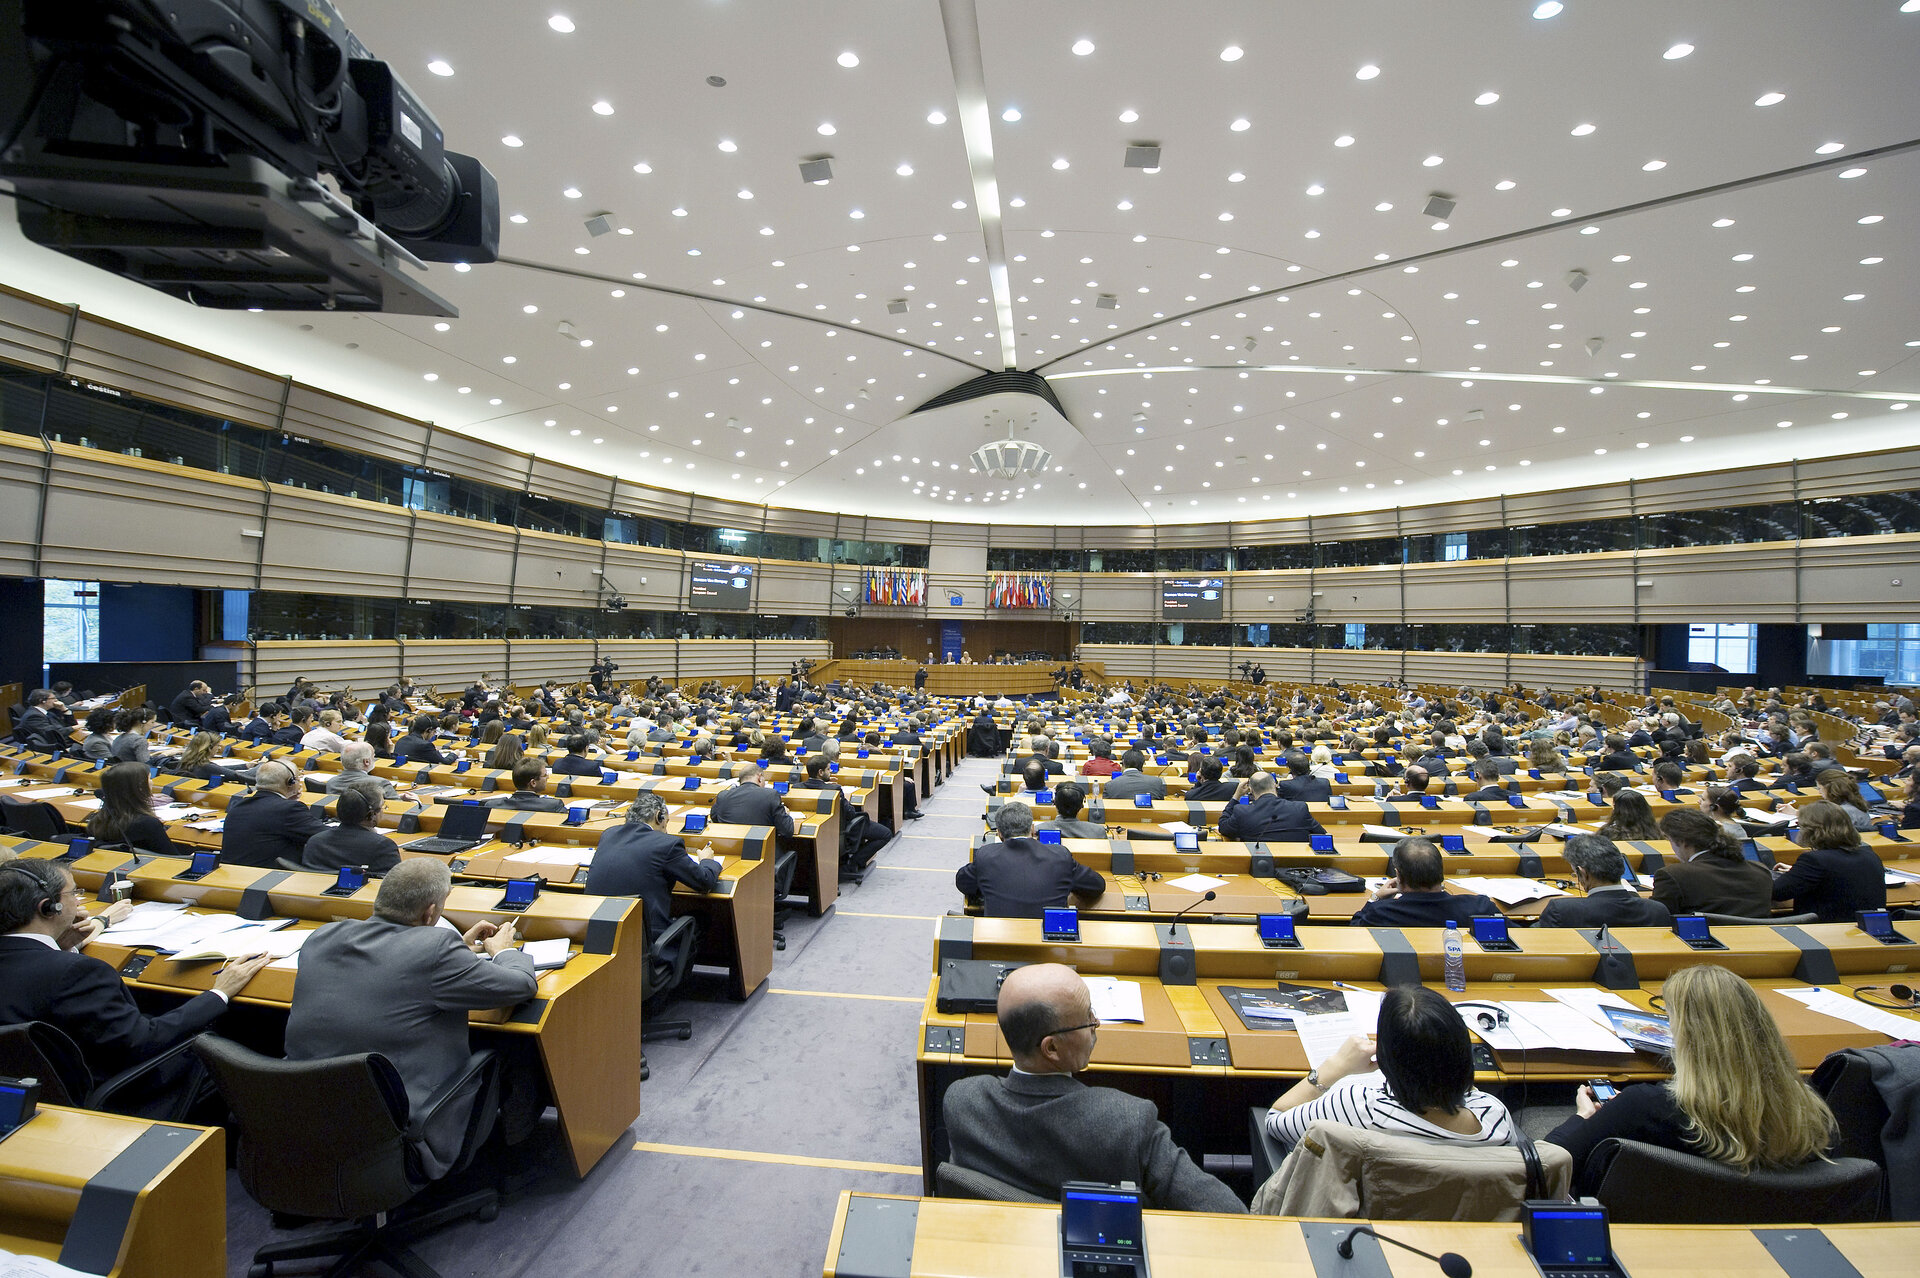 Hemicycle of the European parliament during the Conference on Space Policy for society and citizens